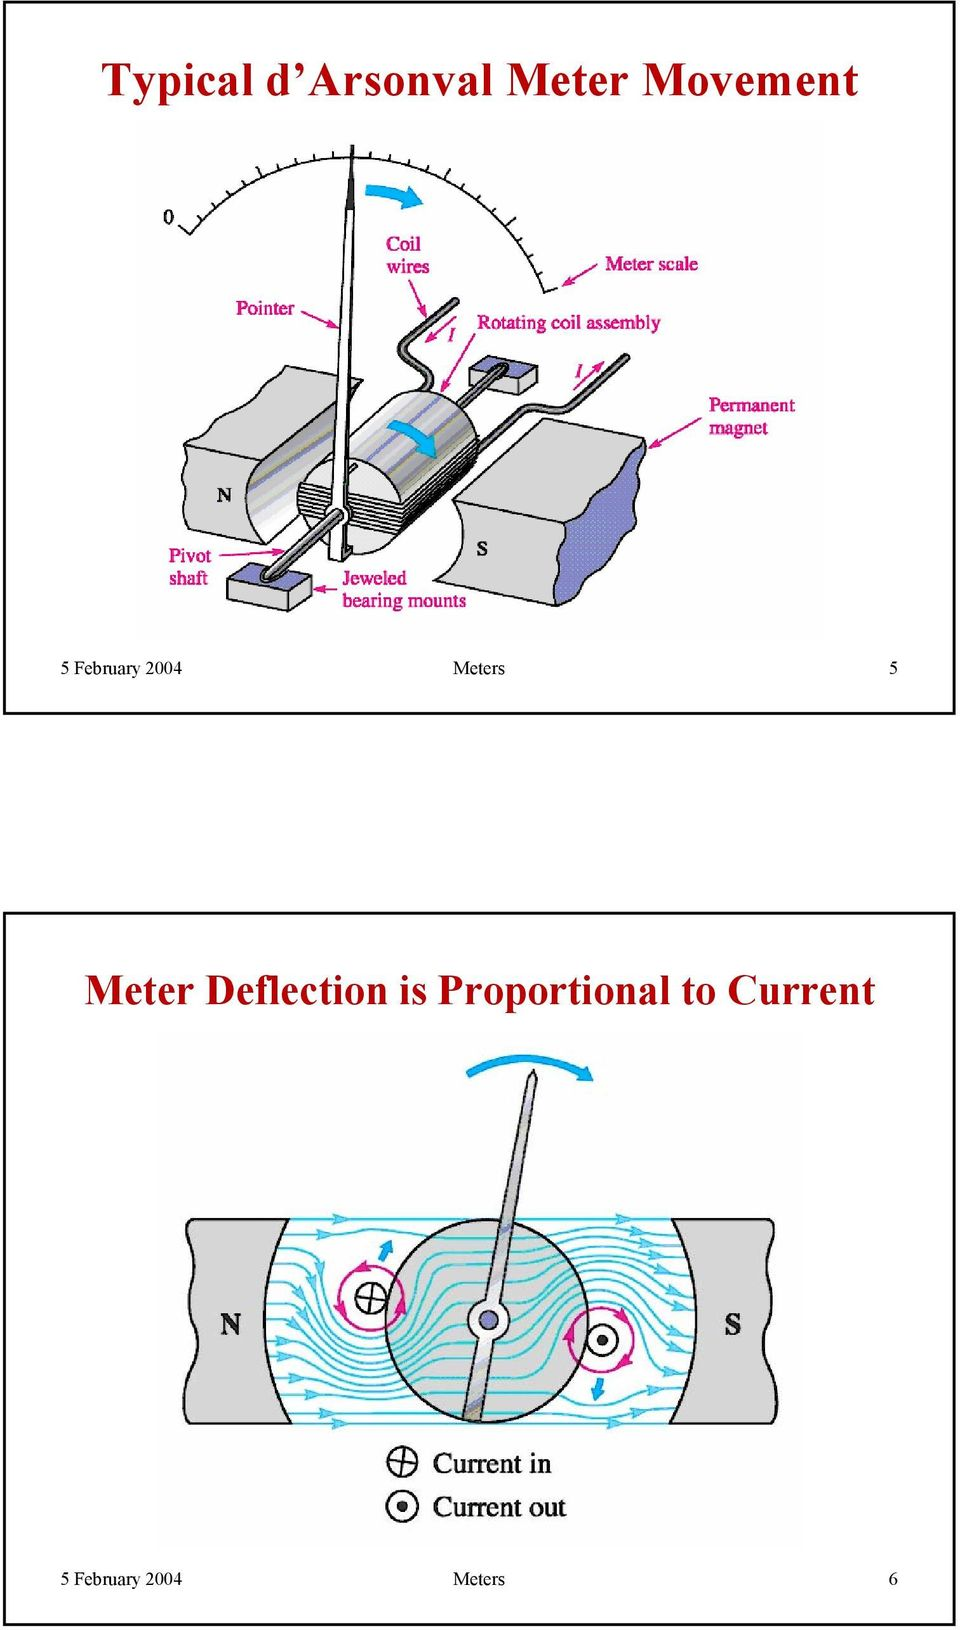 Meter Deflection is